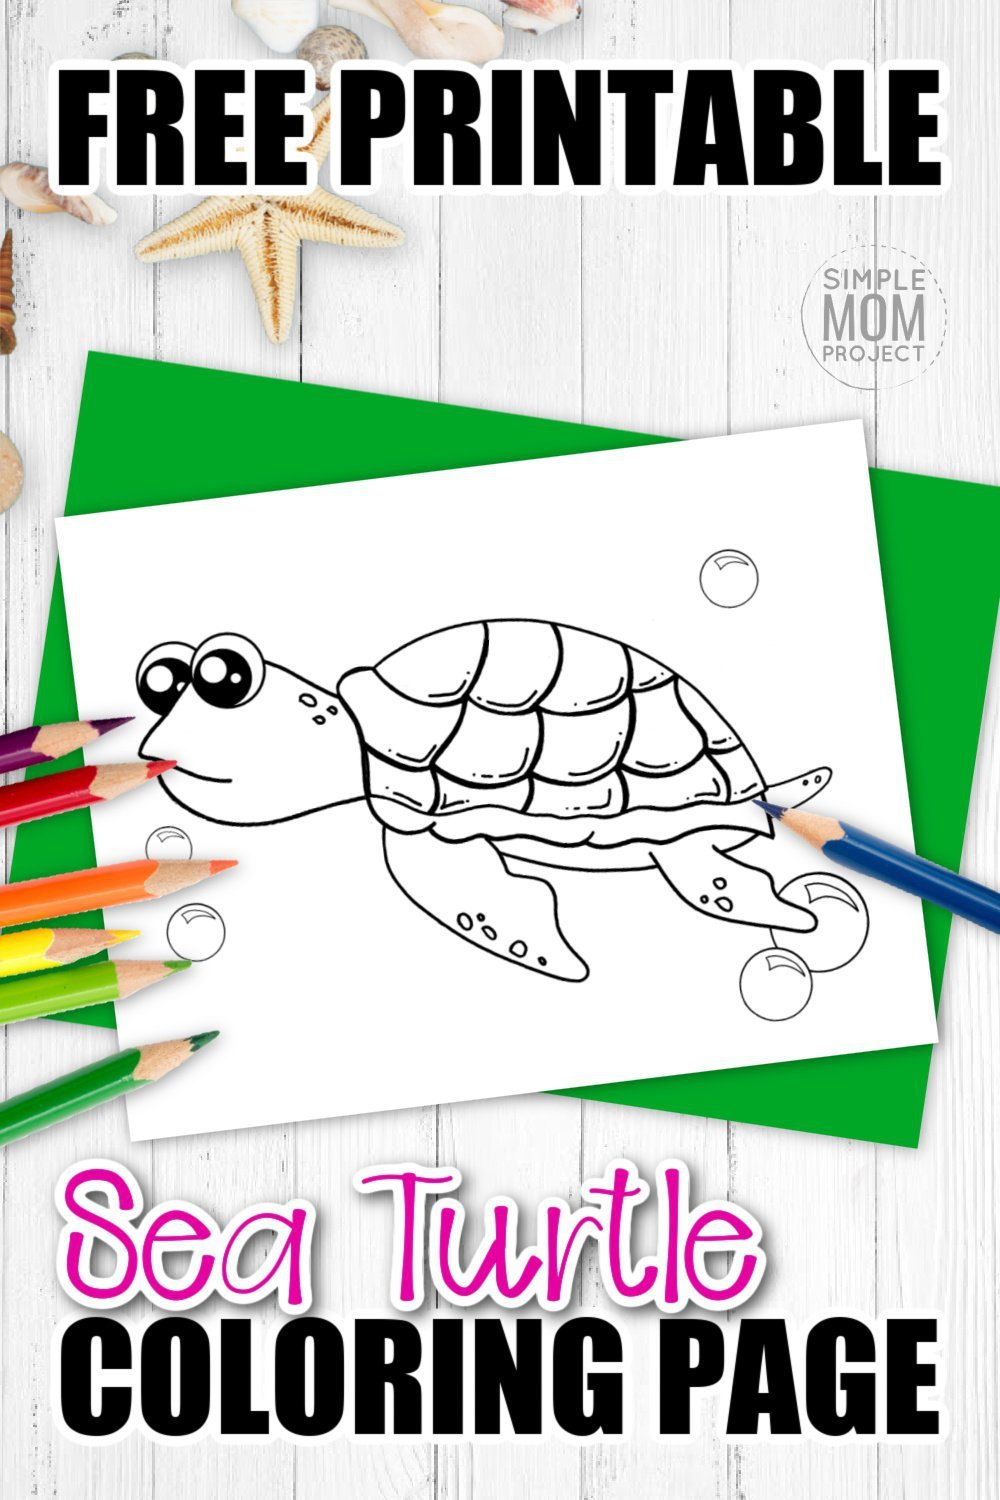 Are you looking for a baby sea turtle coloring page? This free to print cartoon turtle is perfect for kids of all ages including preschoolers, kindergartners and toddlers. You can use this free turtle template to teach your kids about the letter T or by starting your own ocean animal coloring book. Print yours now! #Seaturtlecoloring #turtlecoloring #Oceananimalcoloring #SimpleMomProject